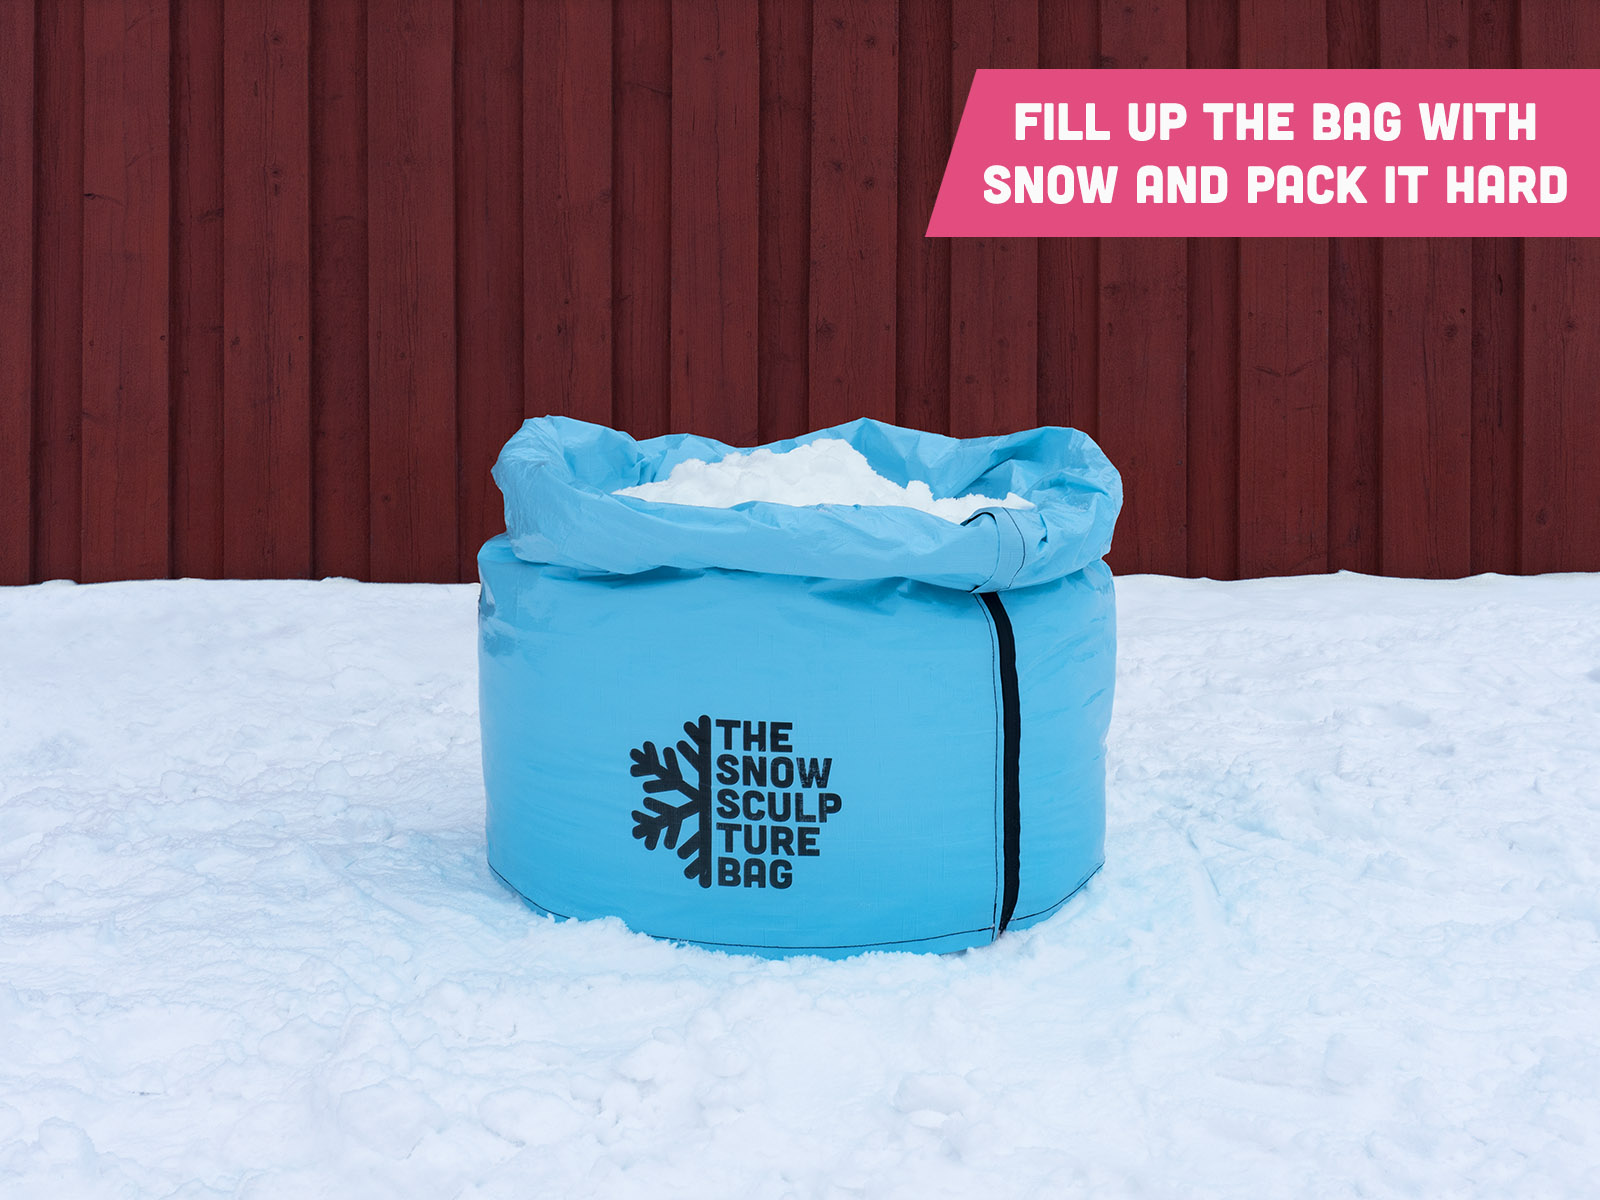 The Snow Sculpture Bag - Filling up the bag